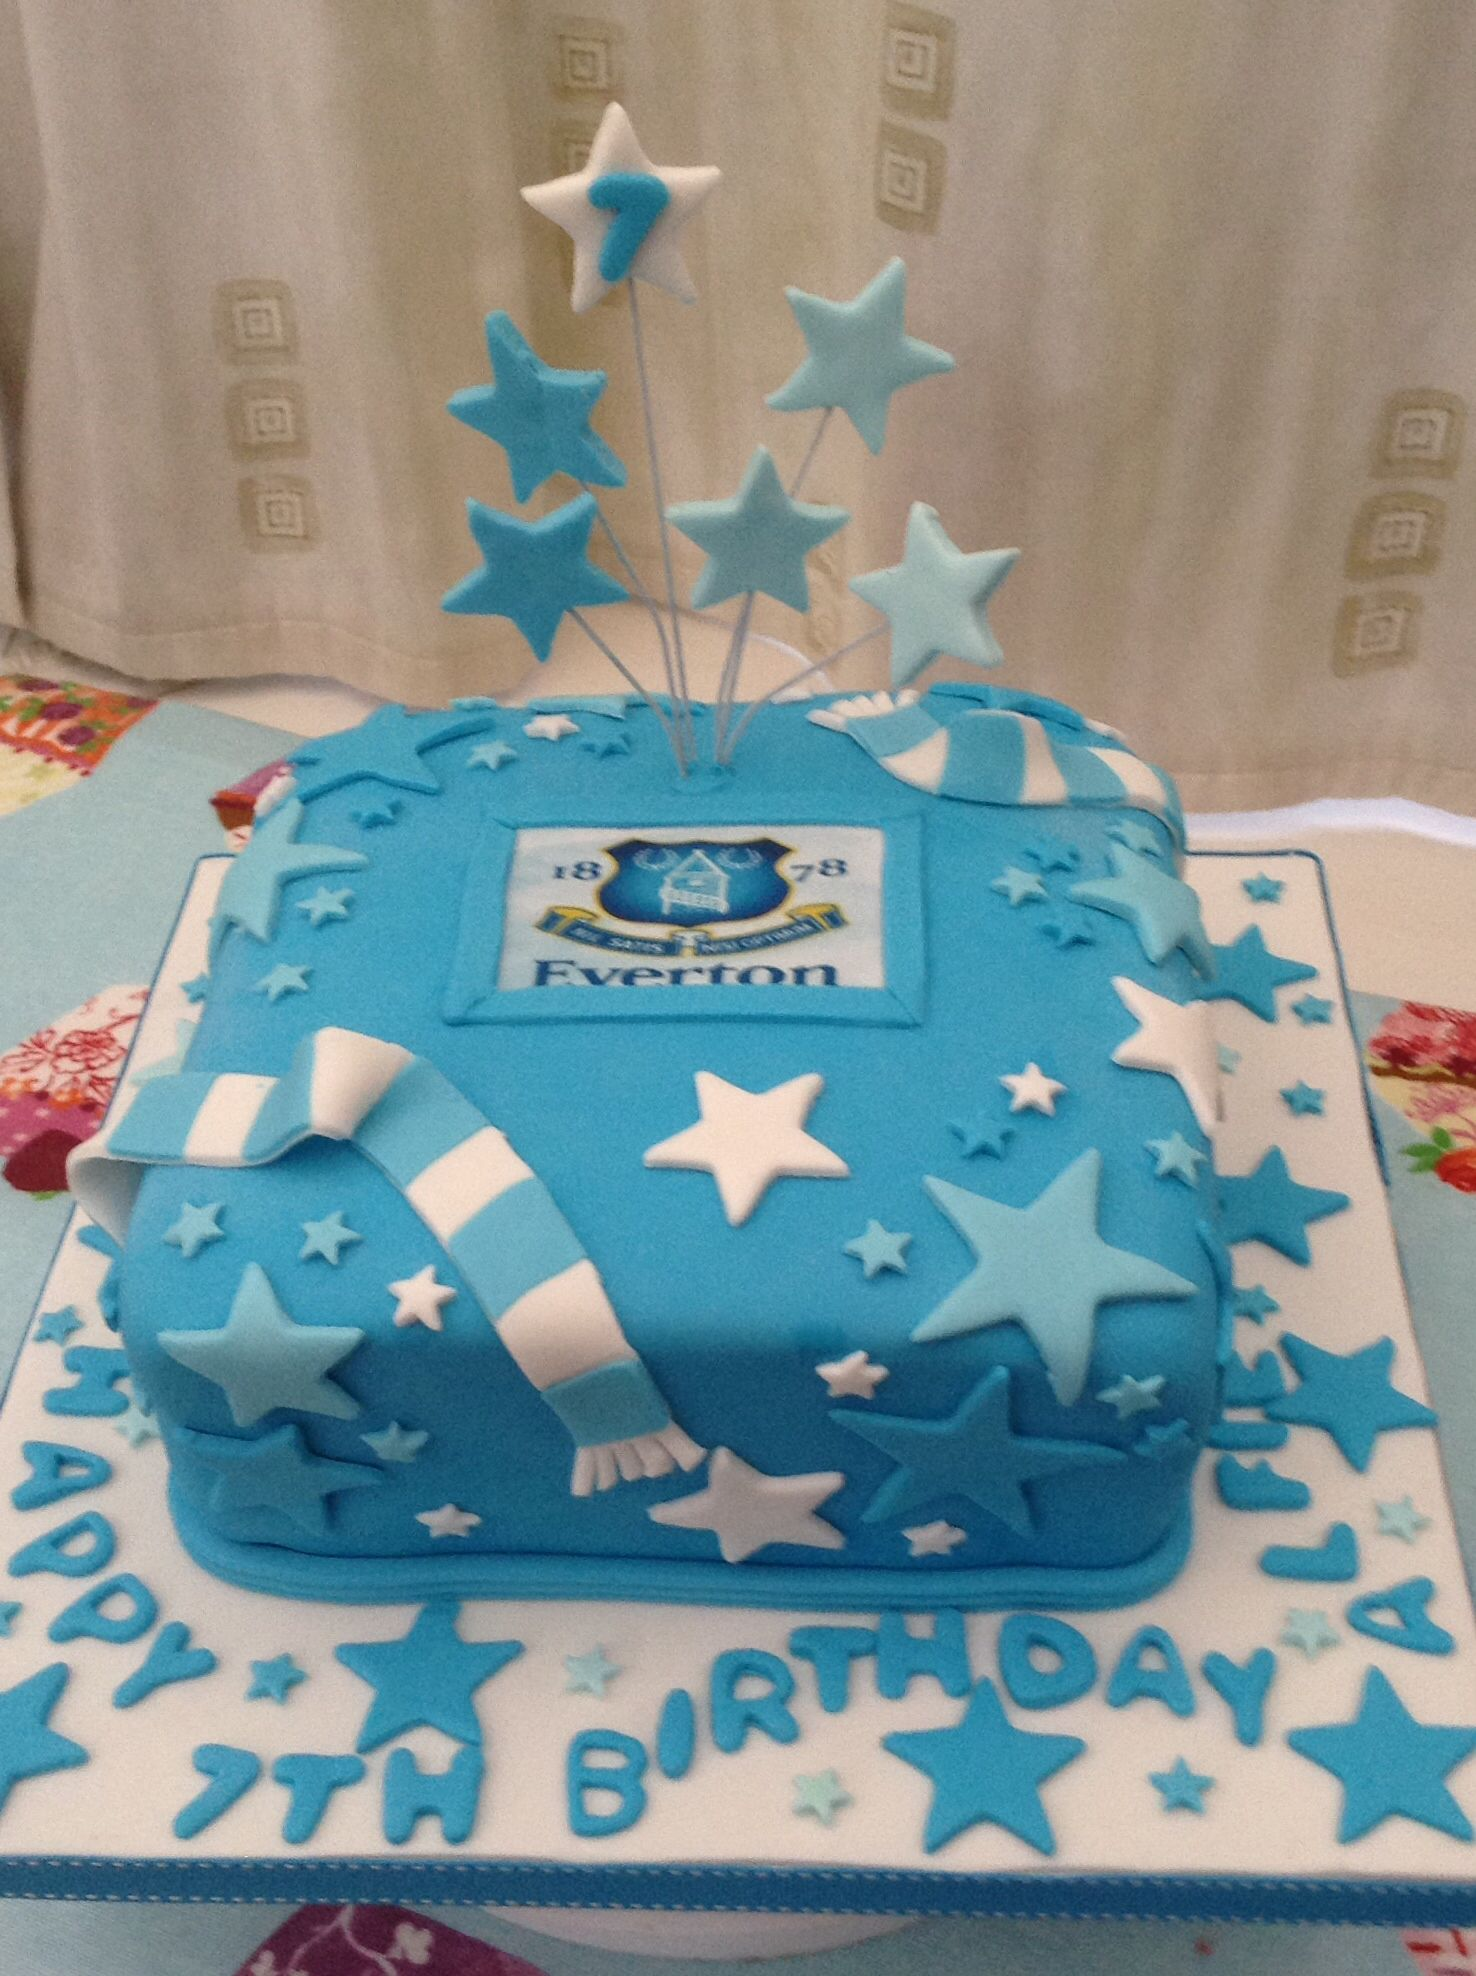 Everton cake Baby V Pinterest Cake Birthday cakes and Cake